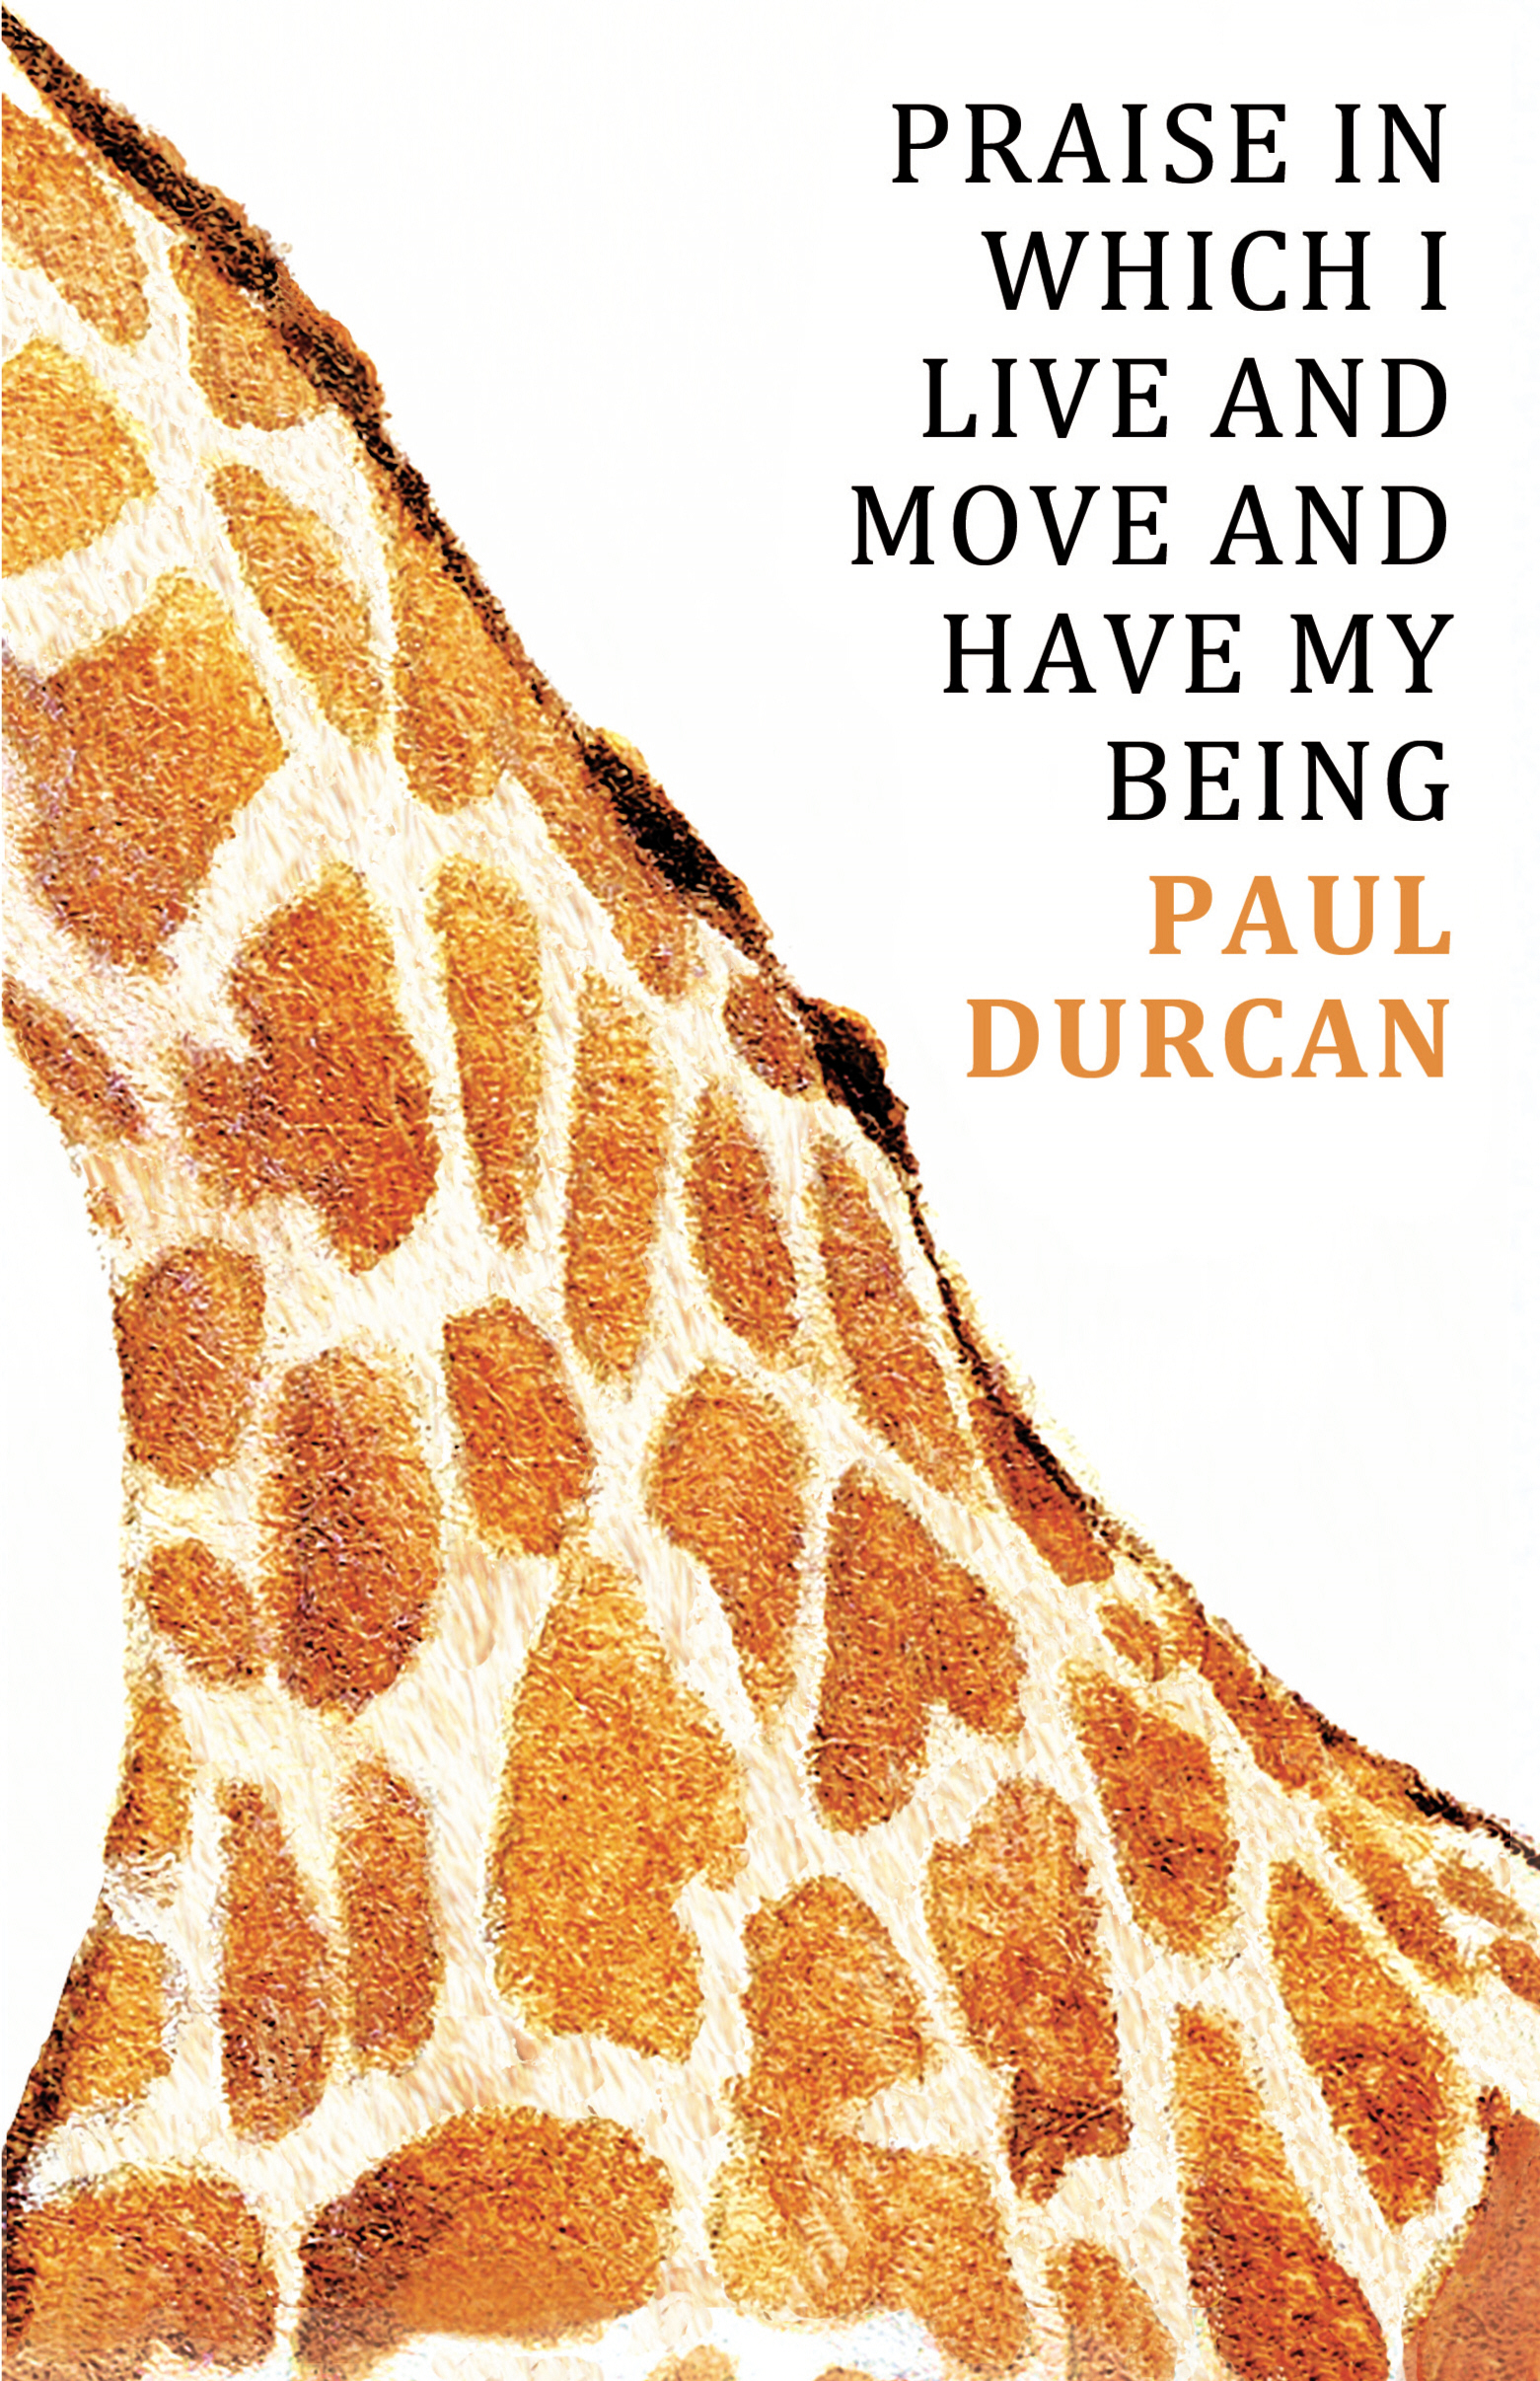 Praise in Which I Live and Move and Have my Being By: Paul Durcan